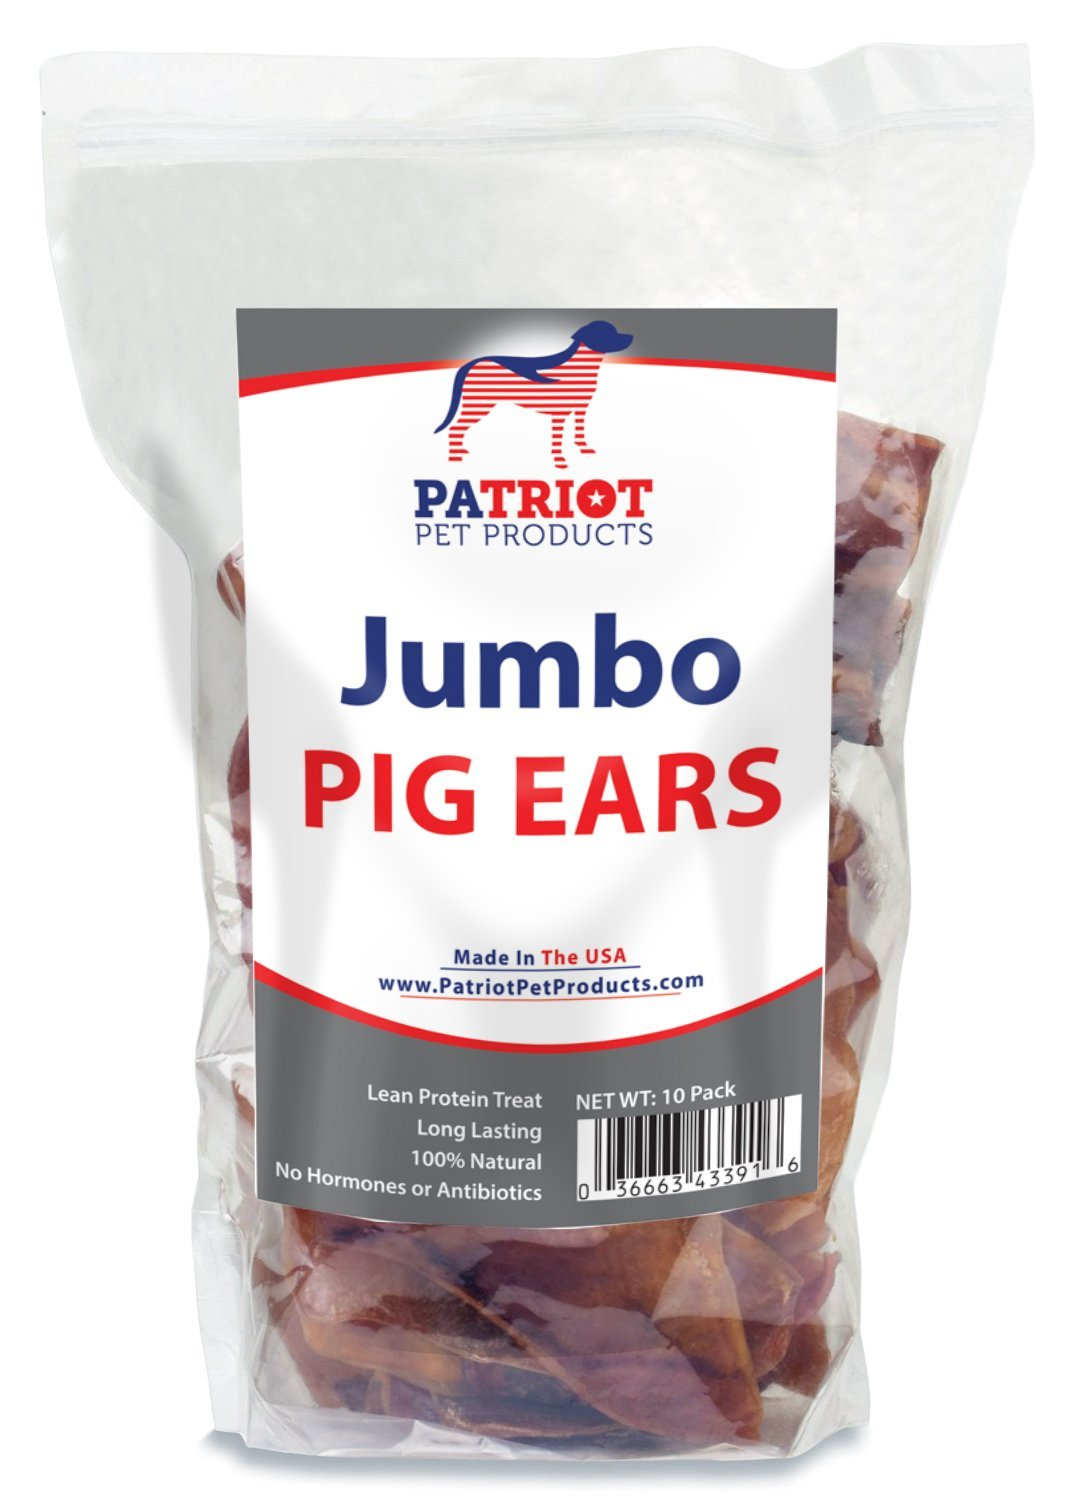 Patriot Pet Jumbo Pig Ears for Dogs 10 pack - Quality All Natural USA Chews - Generous Sized Delicious Pigs Ear - Great Reward or Treat - No Preservatives or Harmful Chemicals - USDA Approved